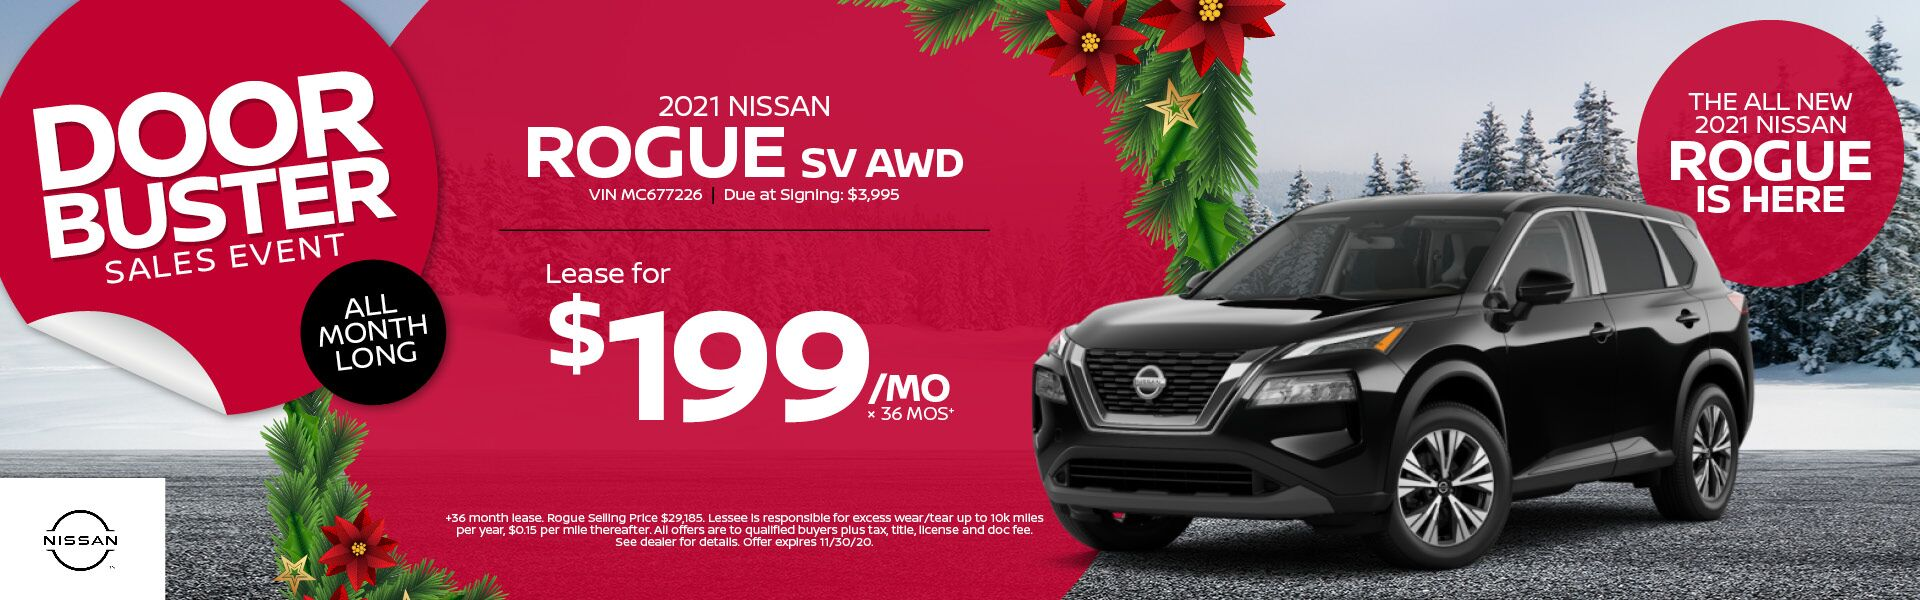 2021 Nissan Rogue Lease for $199/mo x 36 mos